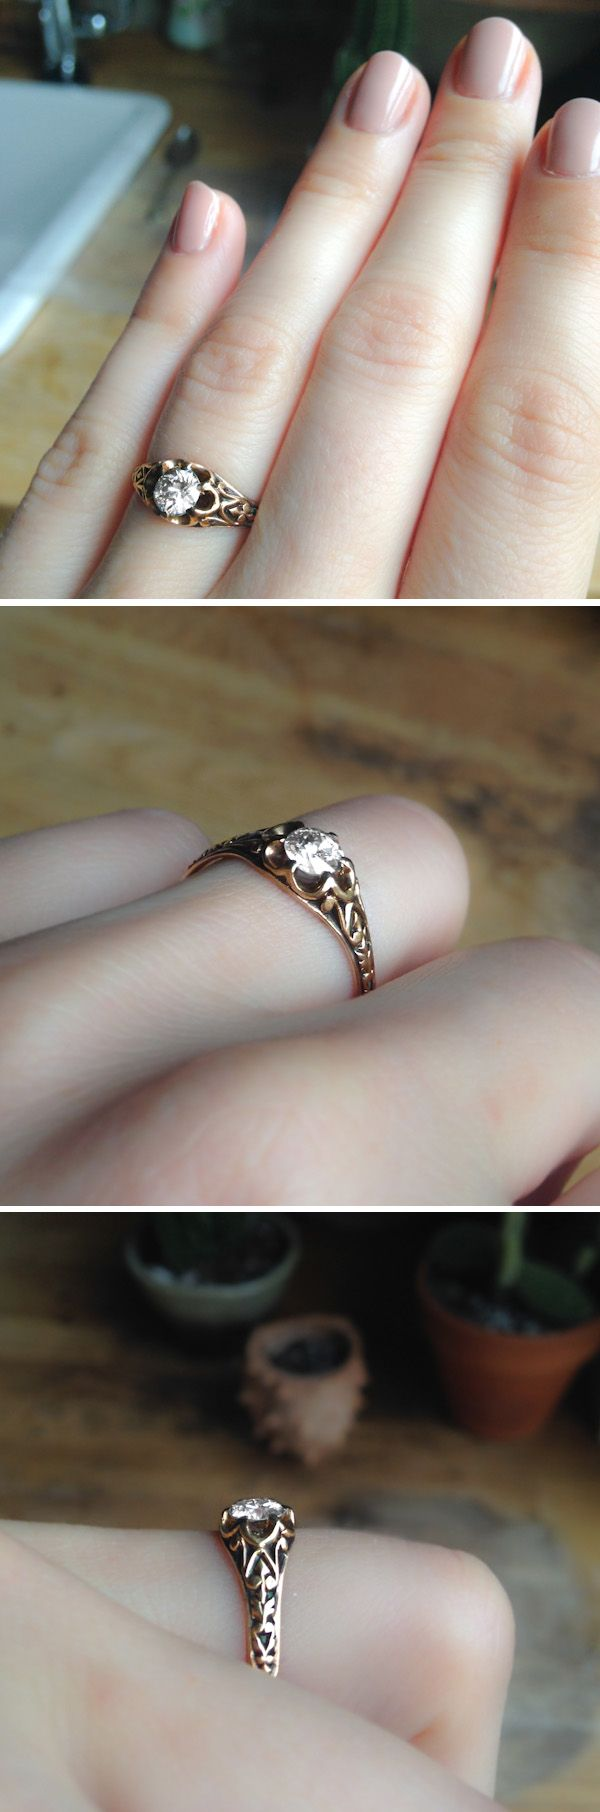 CLASSIC ANTIQUE VICTORIAN BUTTERCUP GOLD ENGAGEMENT RING